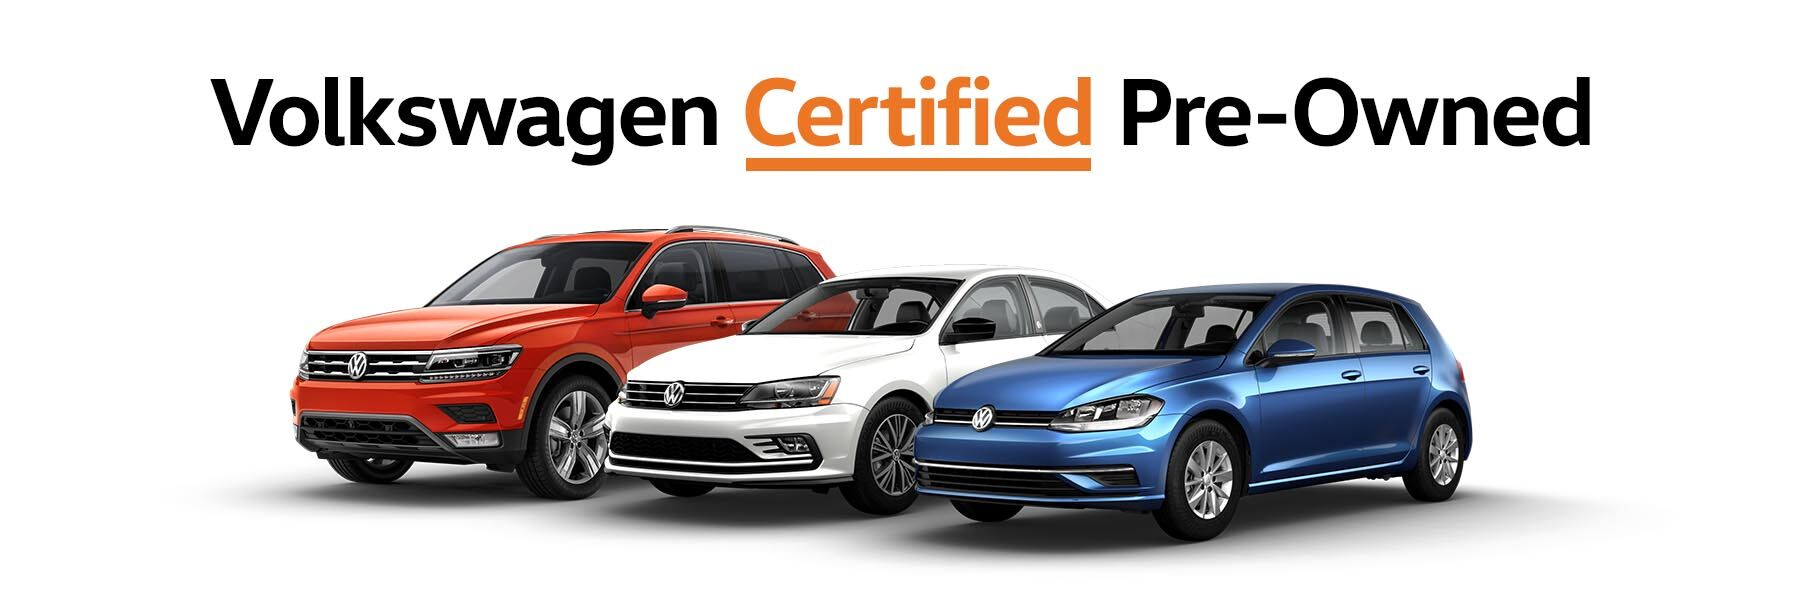 Volkswagen Certified Pre-Owned in Yorkville, NY